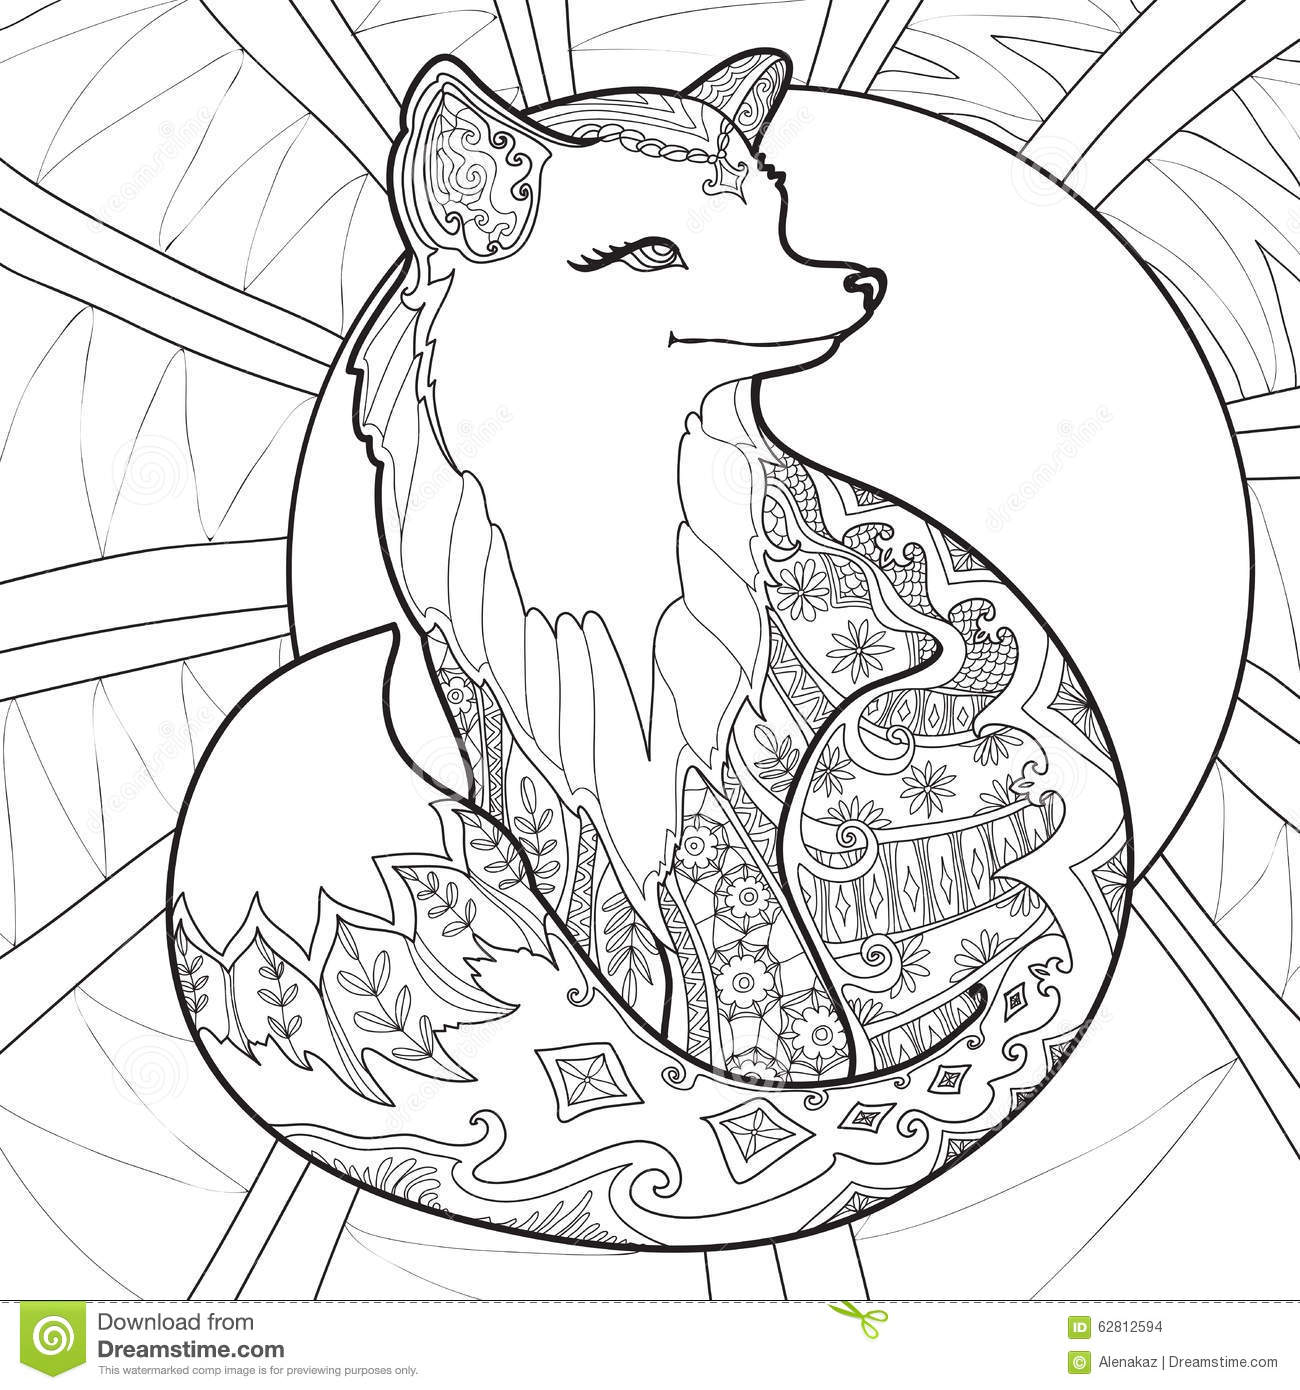 Coloring Pages Abstract Printable : Coloring page with fox stock vector image